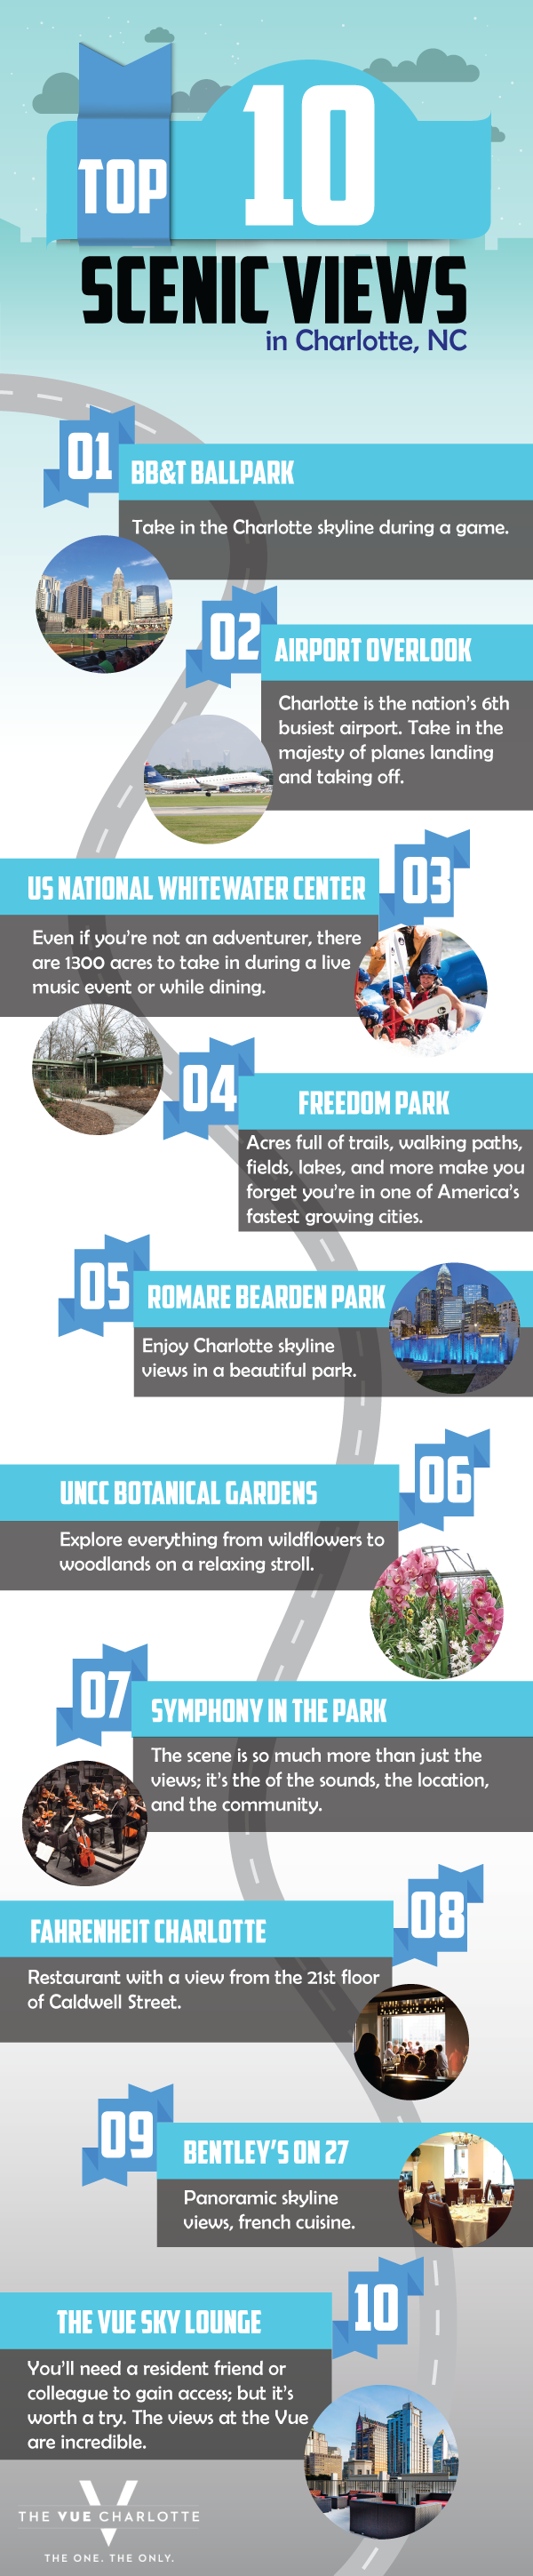 Top 10 Scenic Views in Charlotte Infographic